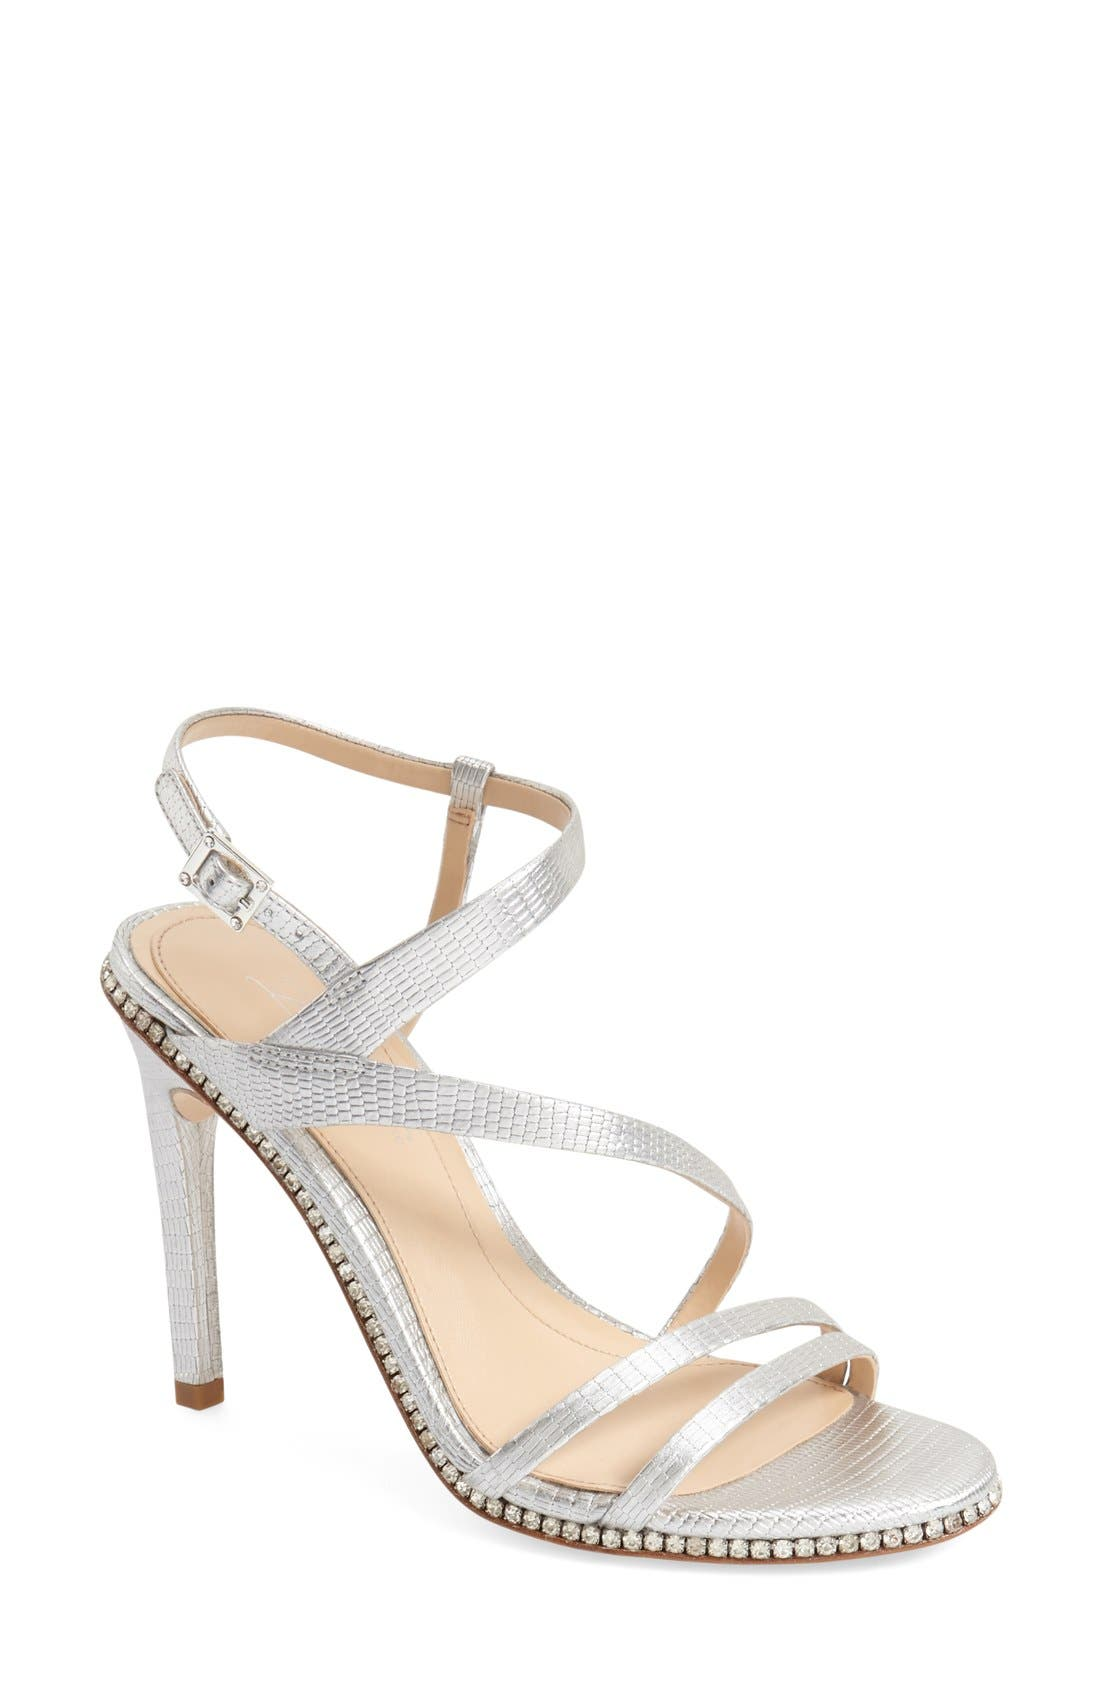 IMAGINE BY VINCE CAMUTO Imagine Vince Camuto Gian Strappy Sandal